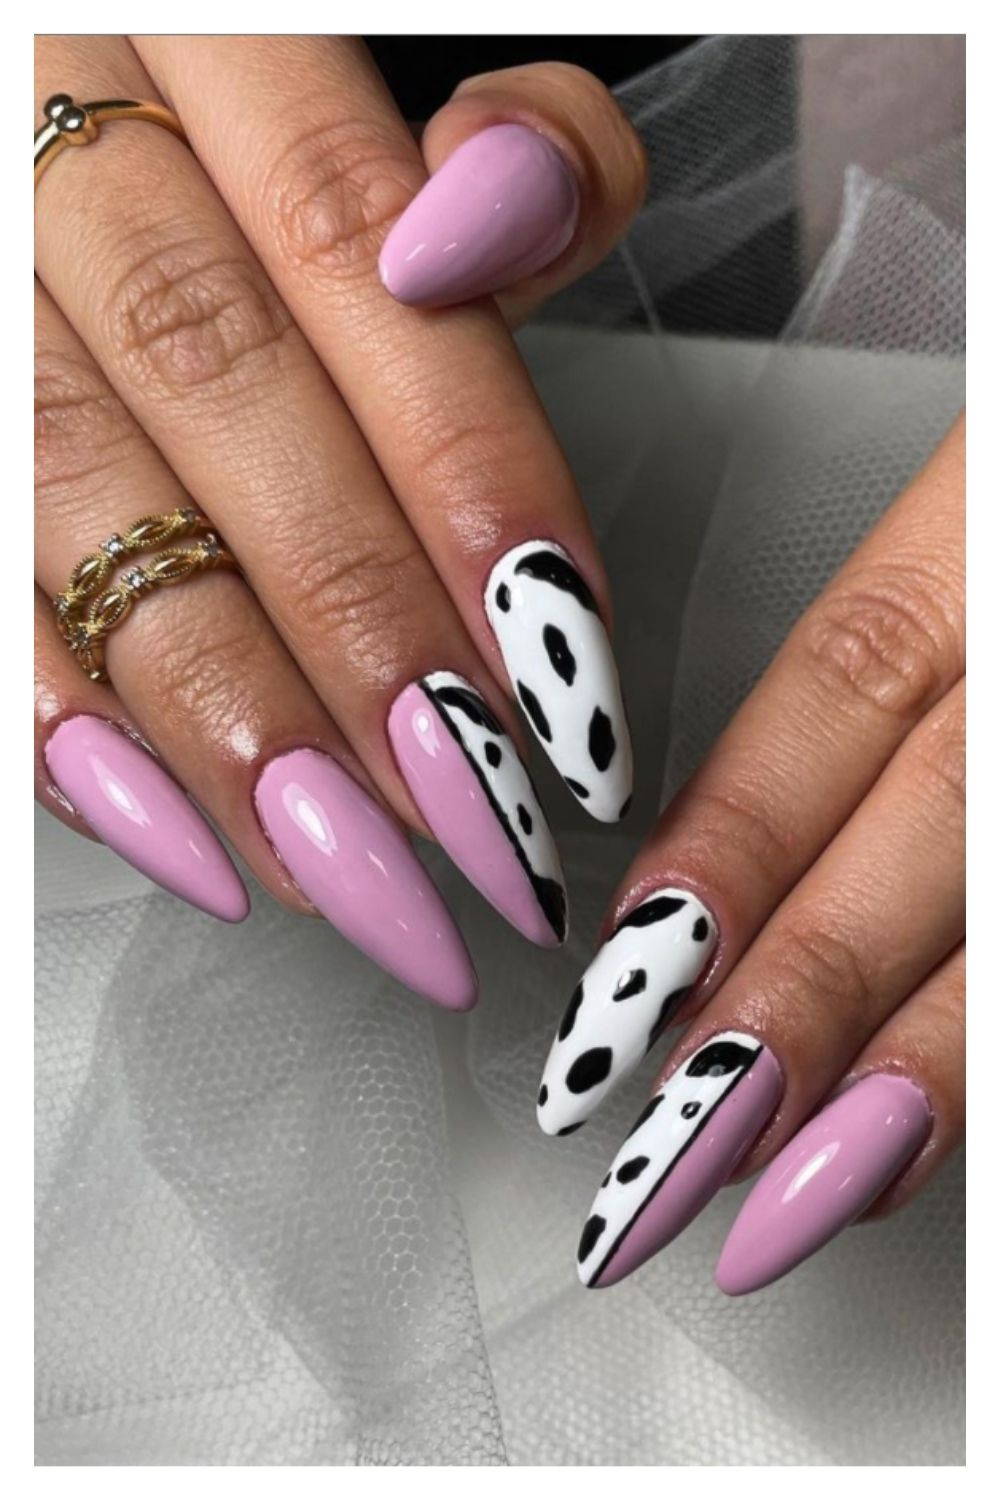 White and purple almond nails